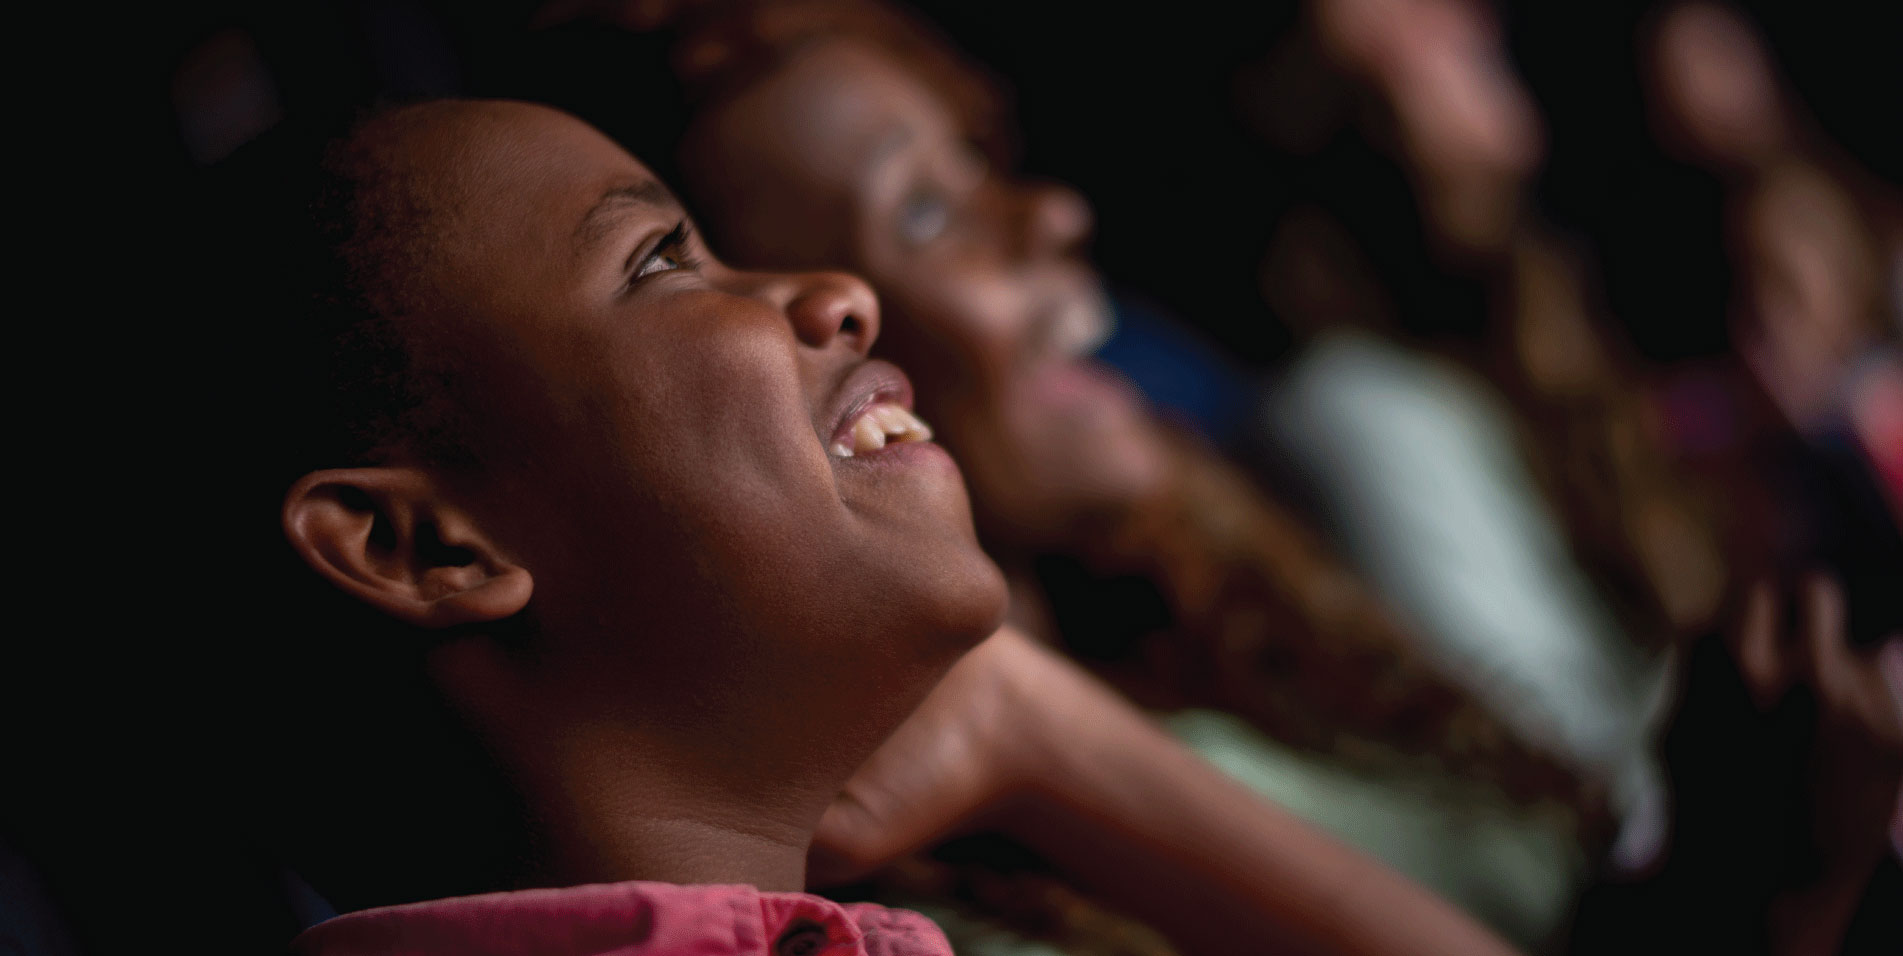 Theater audience whose faces are lite by the screen